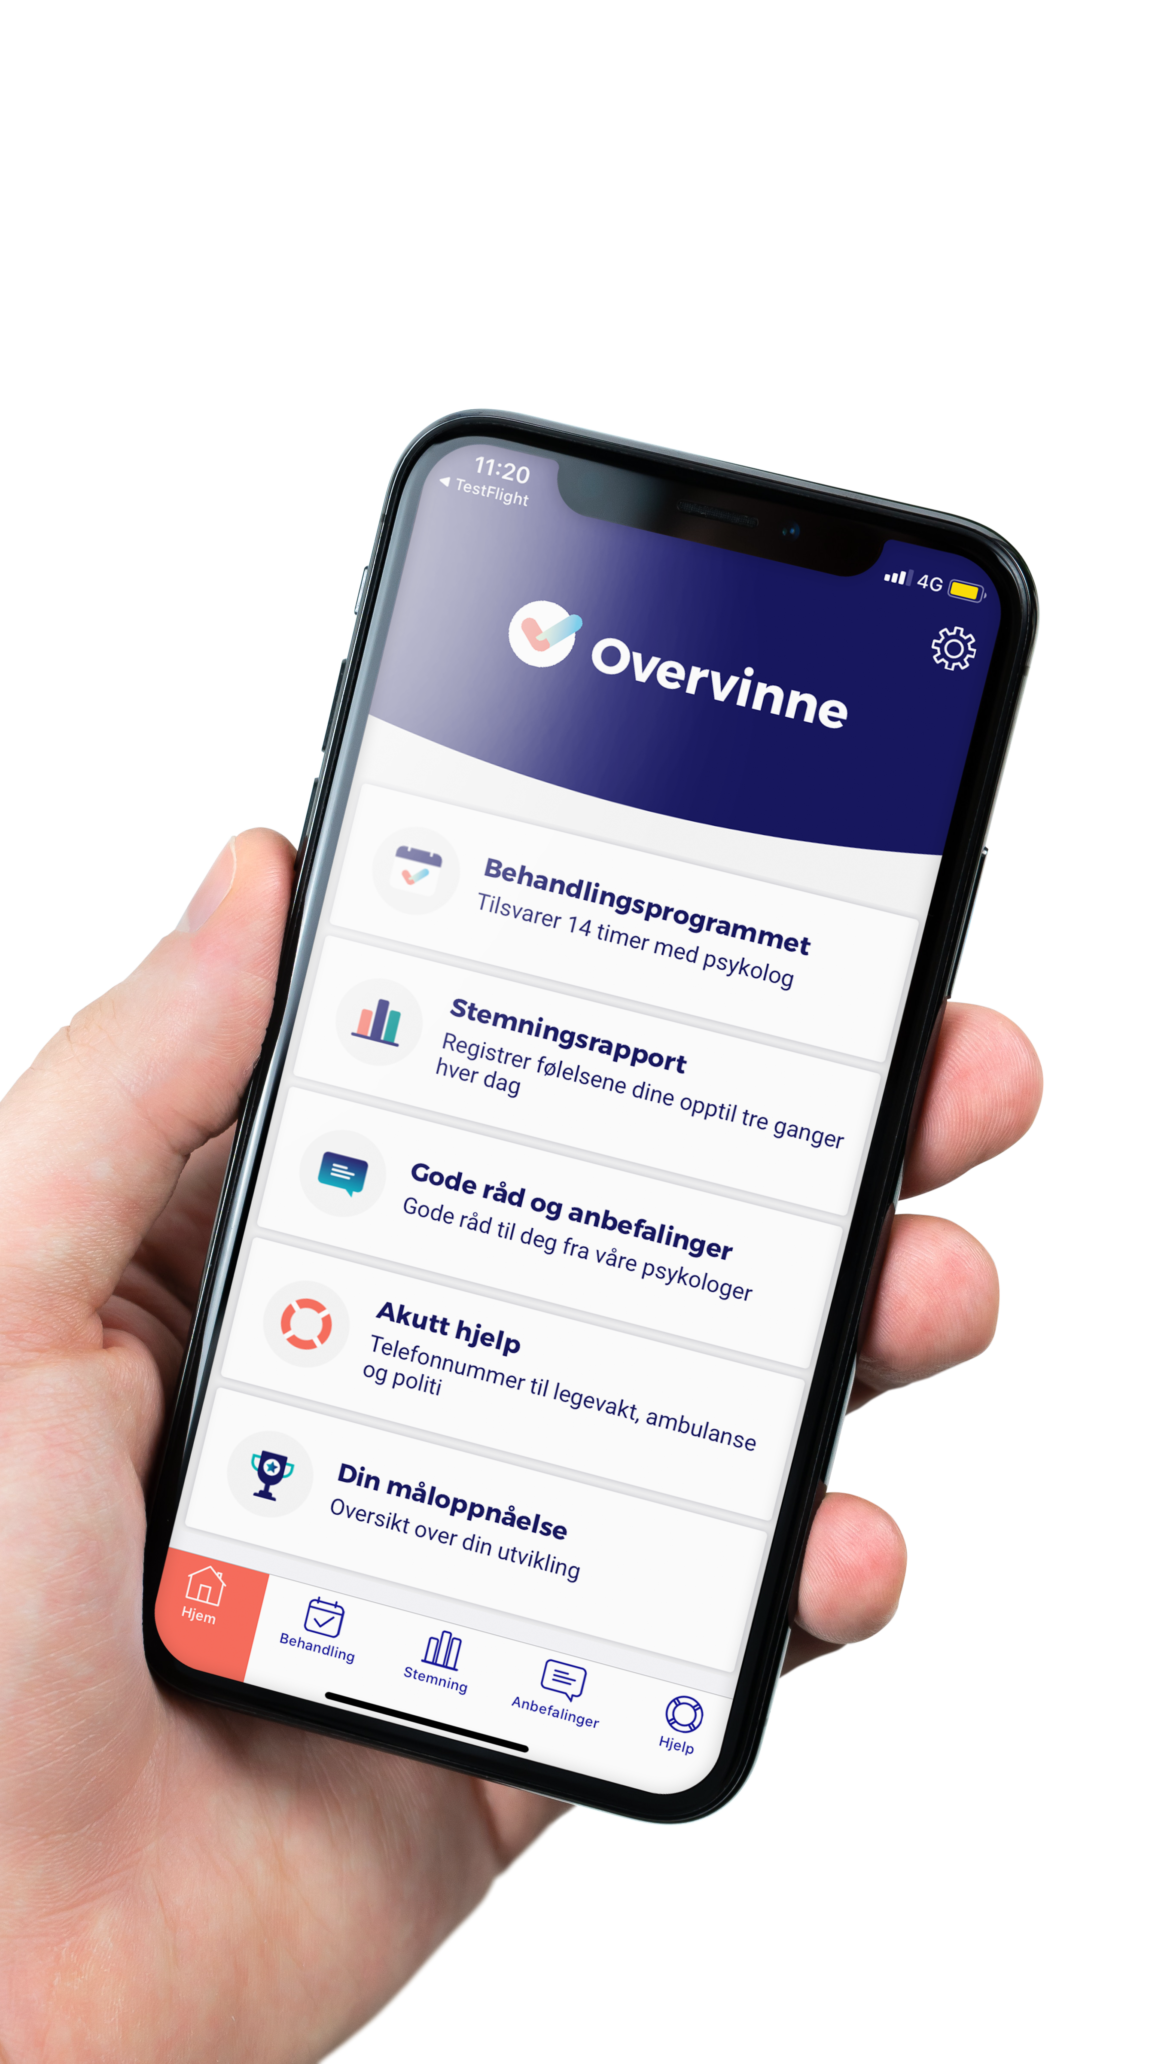 Picture of overvinne app